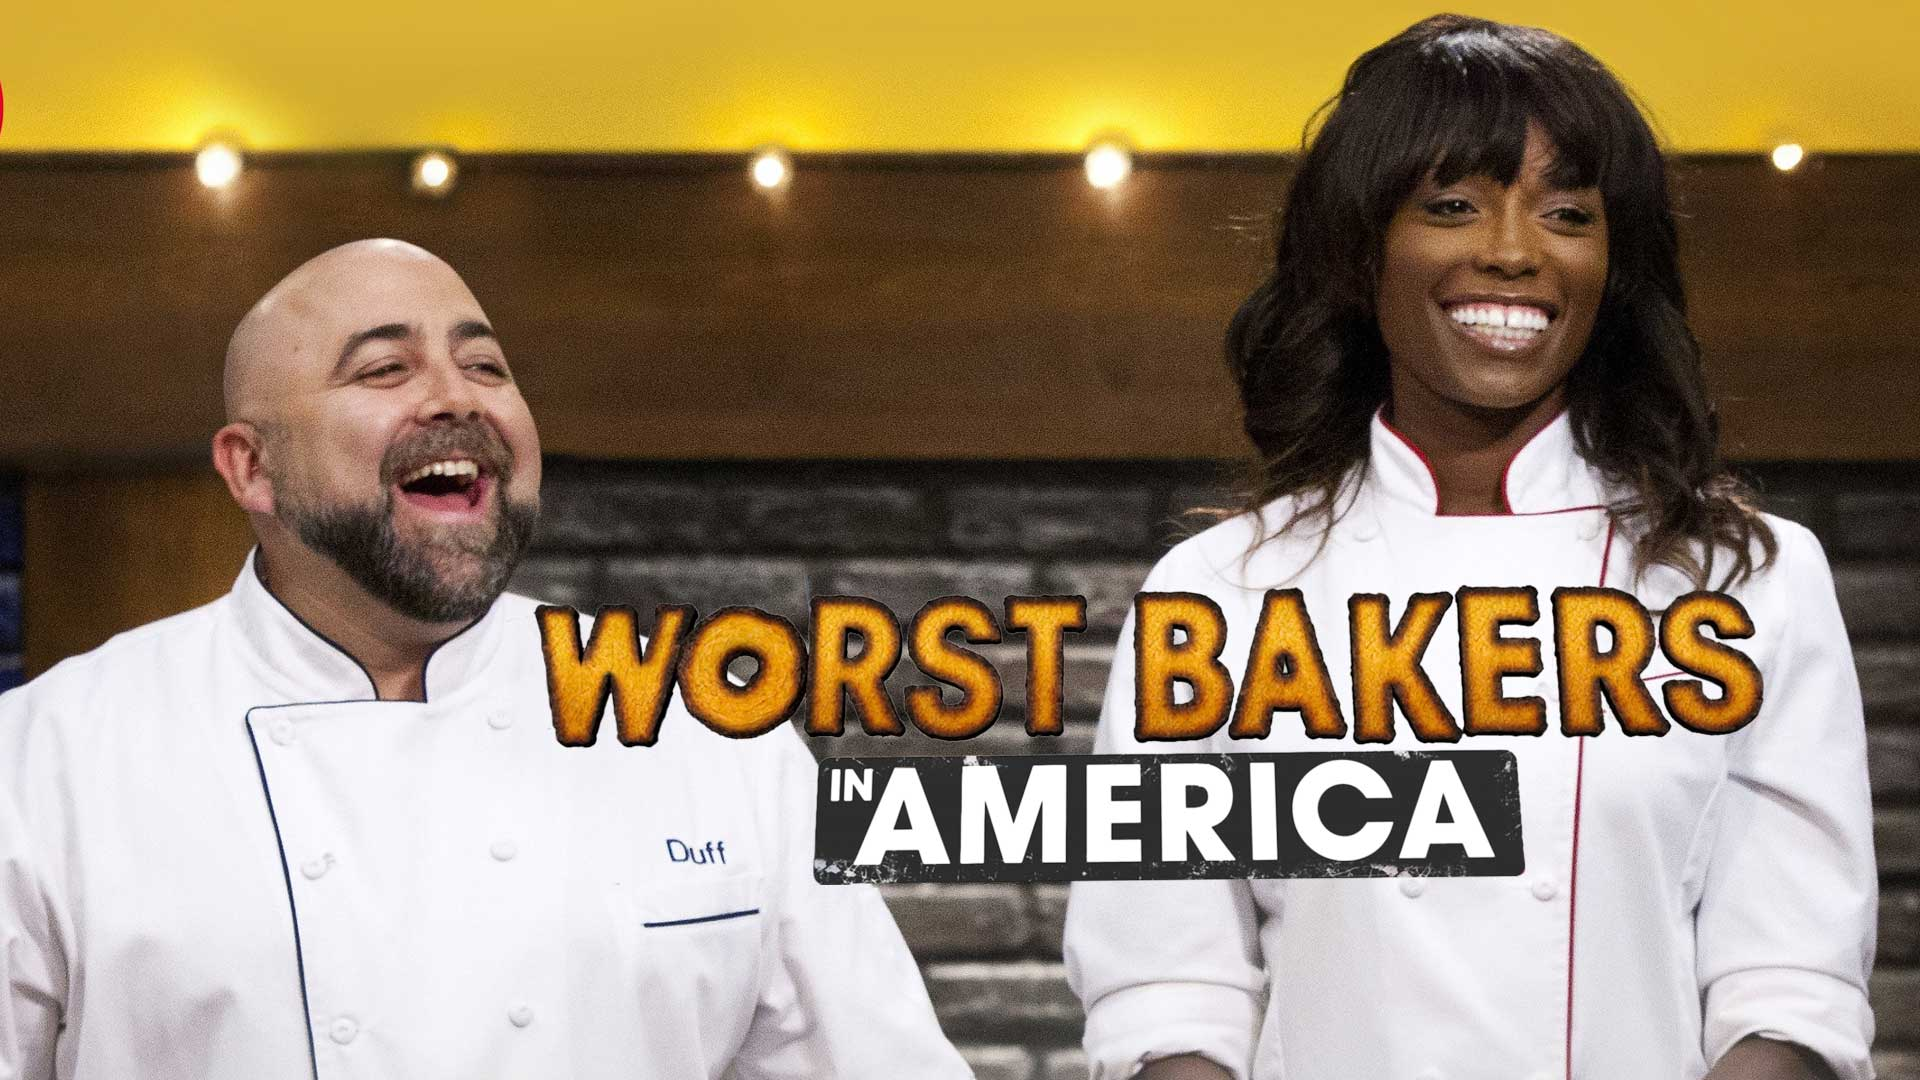 Worst Bakers in America, Season 1